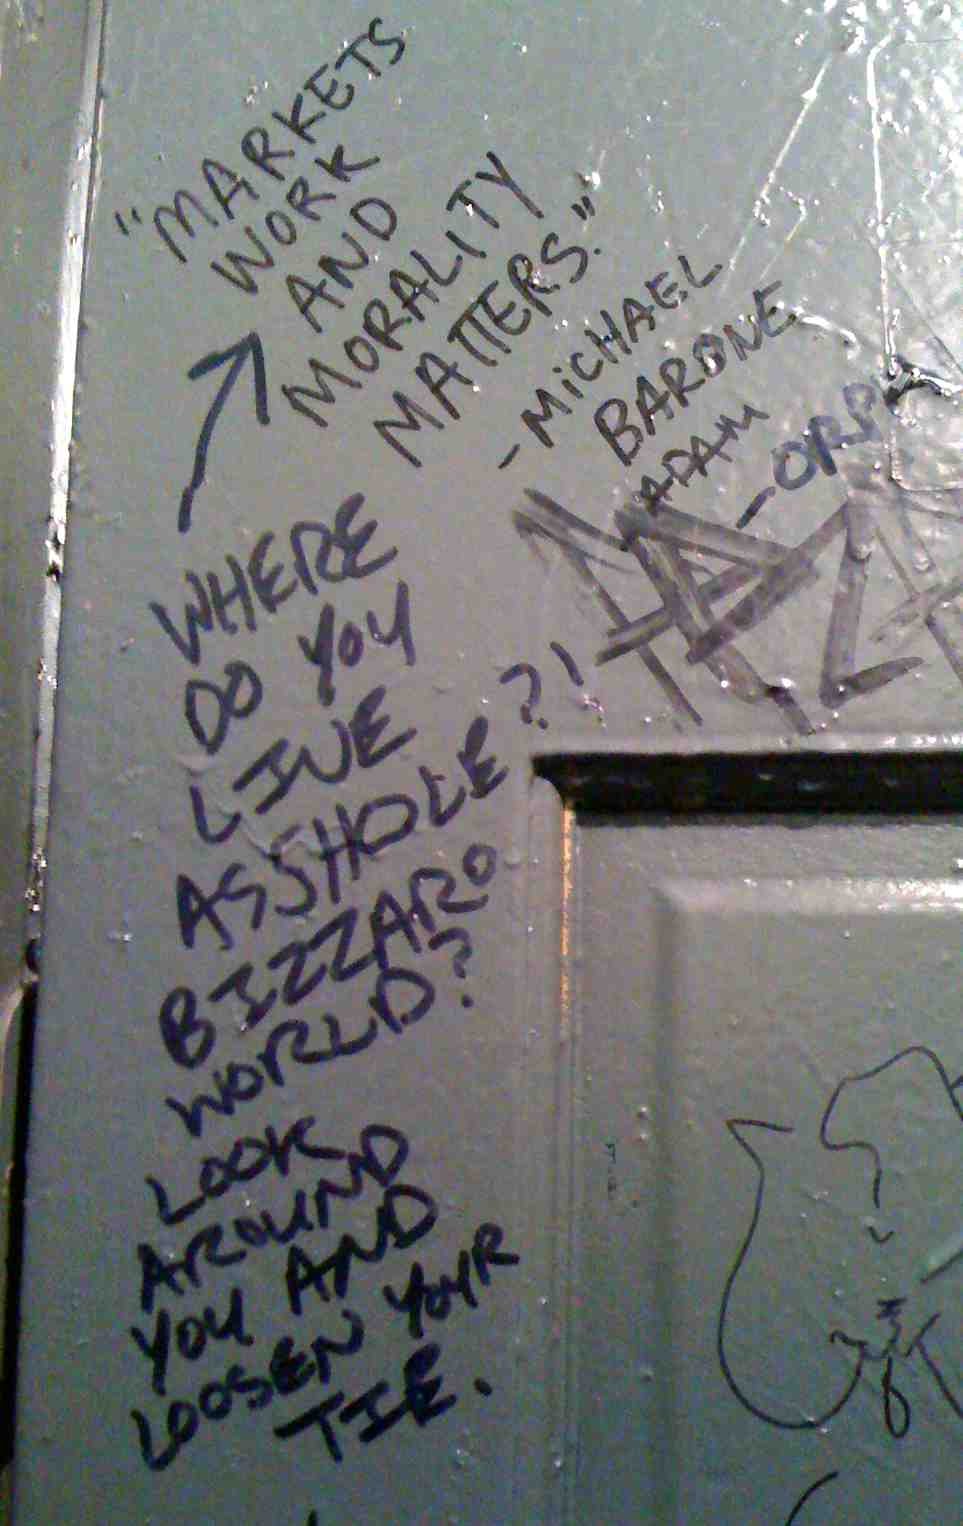 NYC - Vazacs Horseshoe Bar - A: Markets work and morality matters - Michael Barone B: Where do you live asshole? Bizzaro World? Look around you and loosen your tie. title=